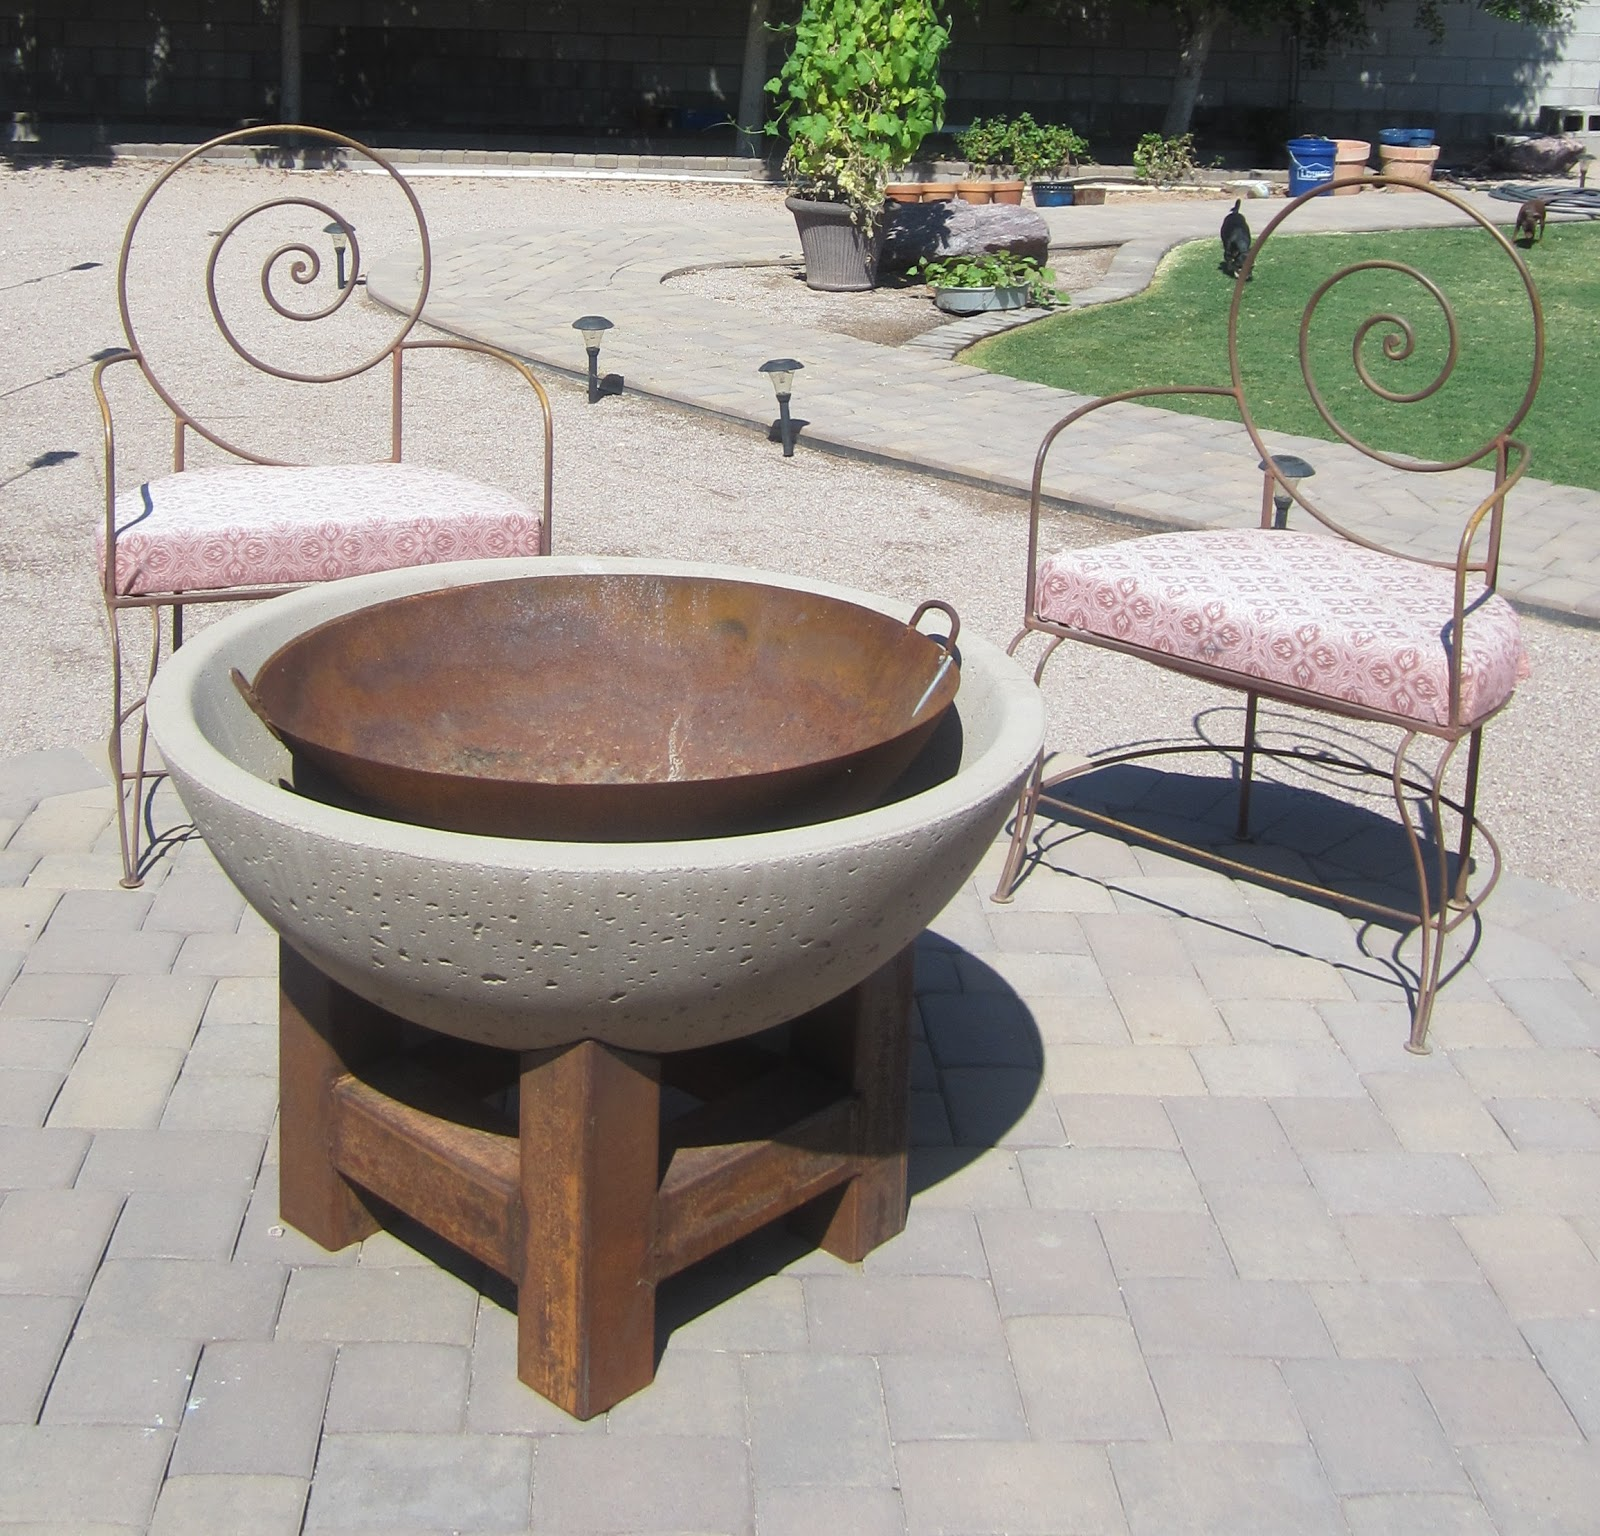 Ink rust and sawdust diy fire pit for Diy fire pit plans